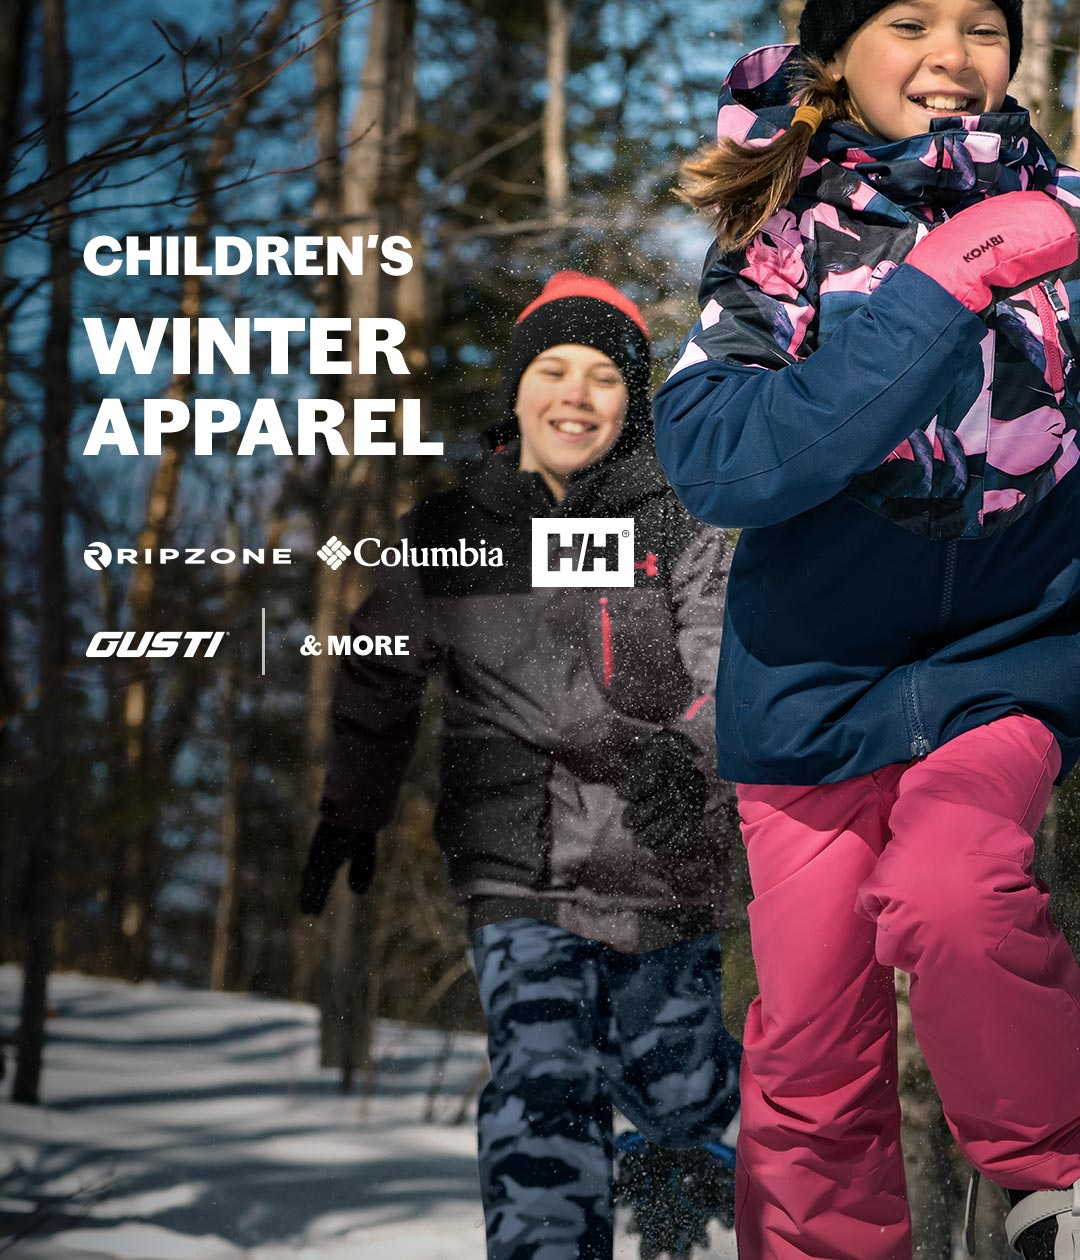 Children's winter apparel - Get them ready !